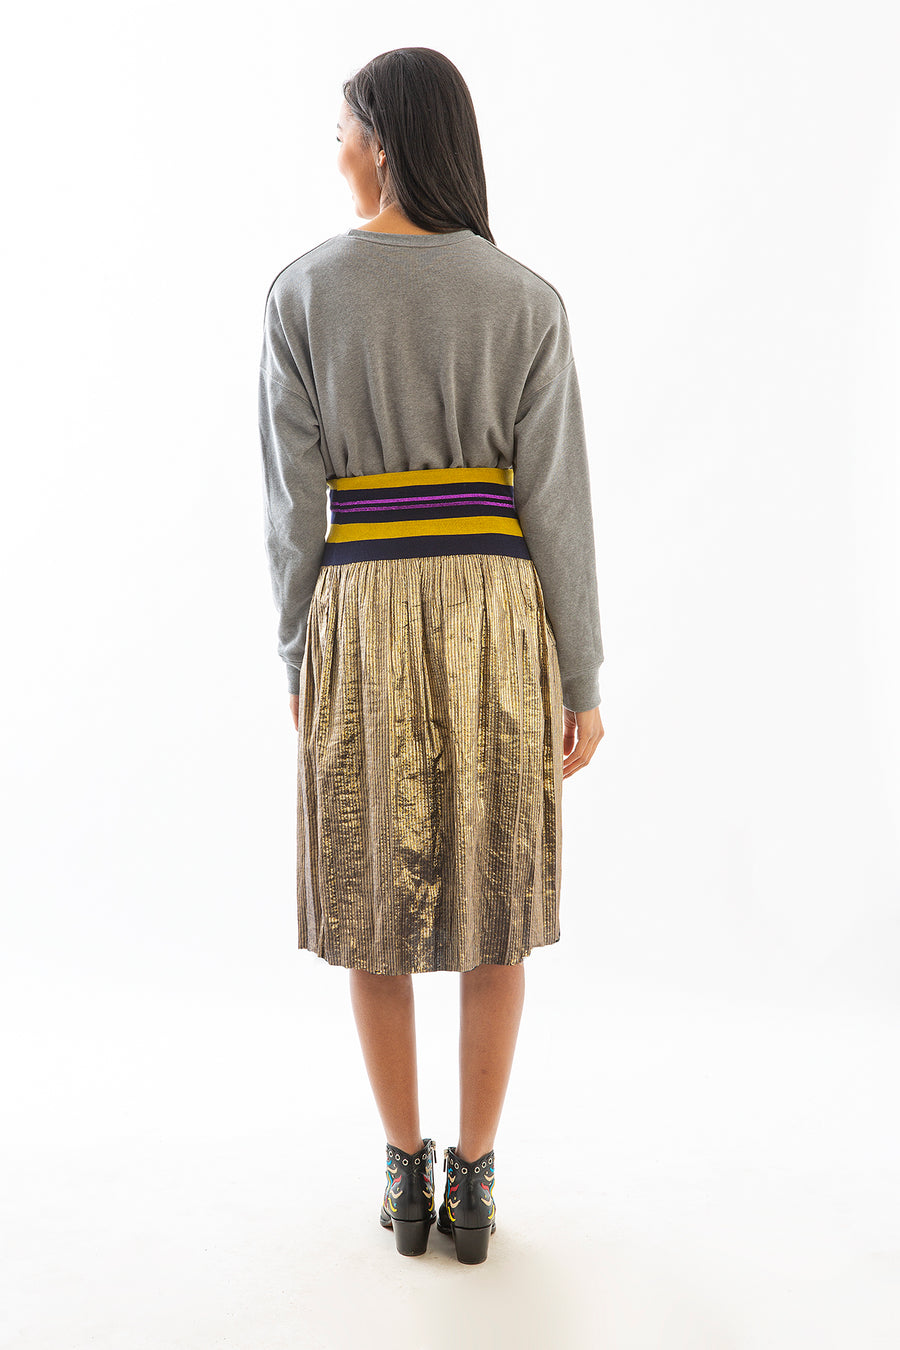 CARLISLE SKIRT GOLD METALLIC